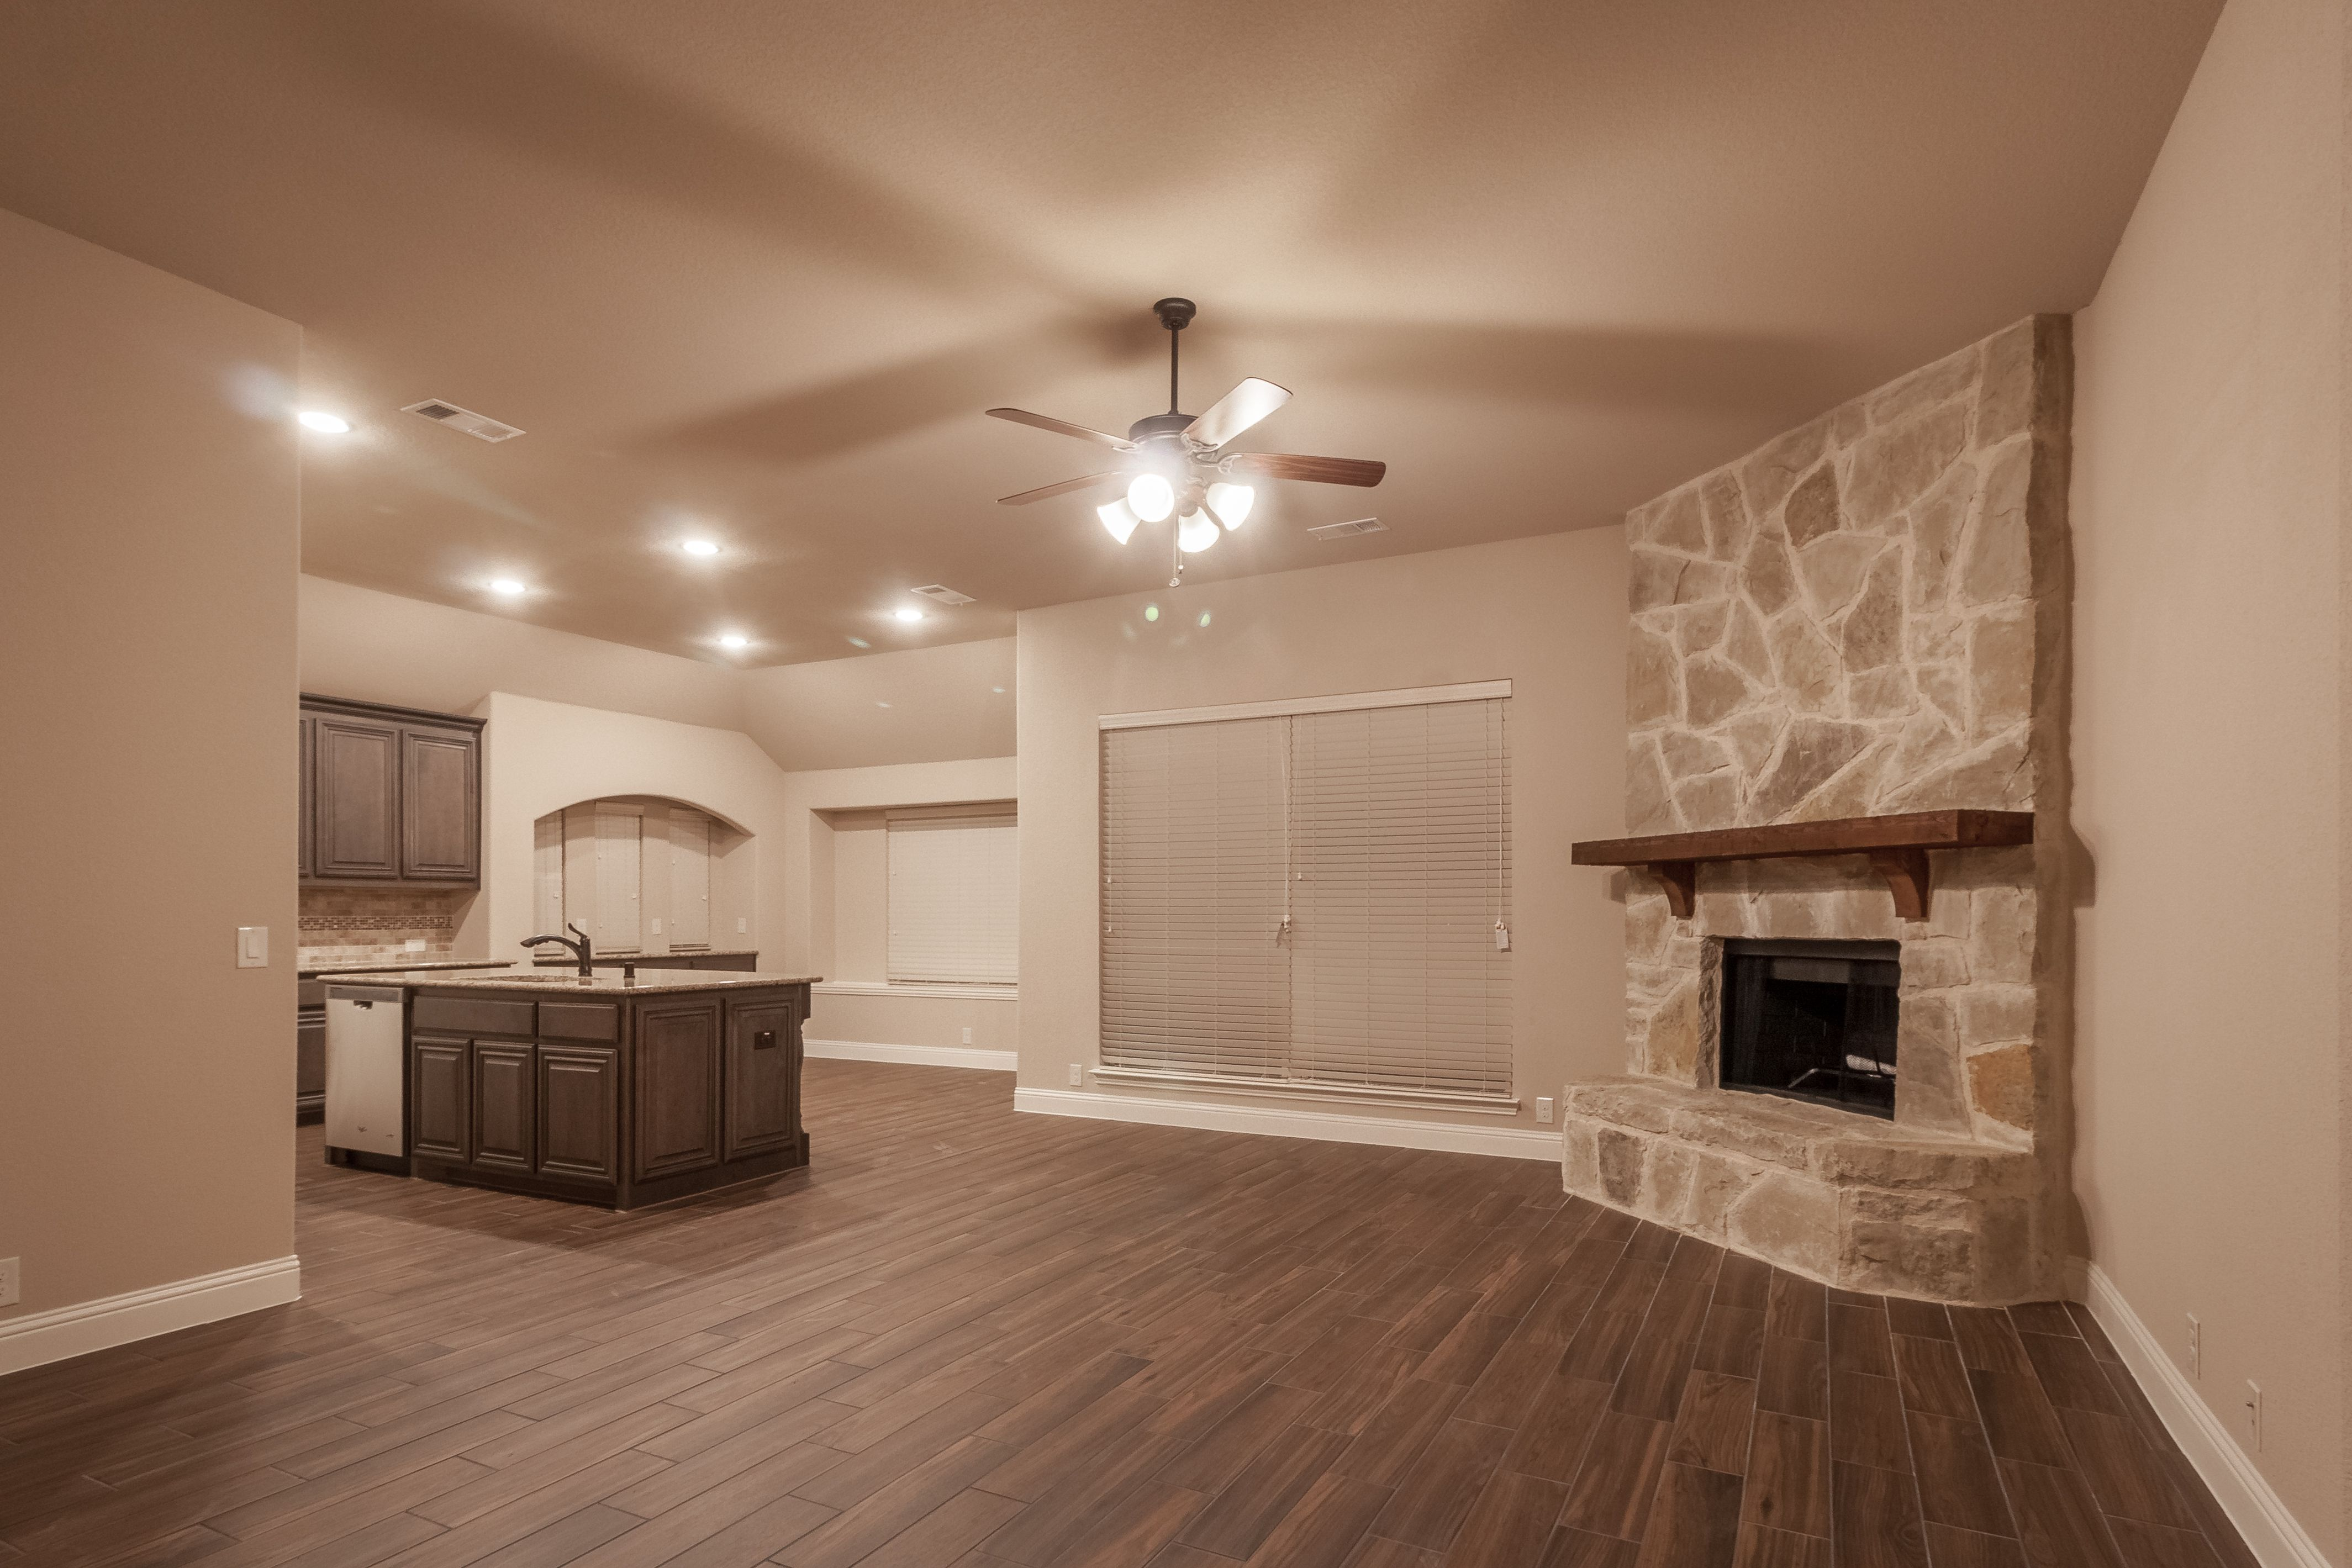 Wood Flooring, stone to ceiling fireplace fireplace